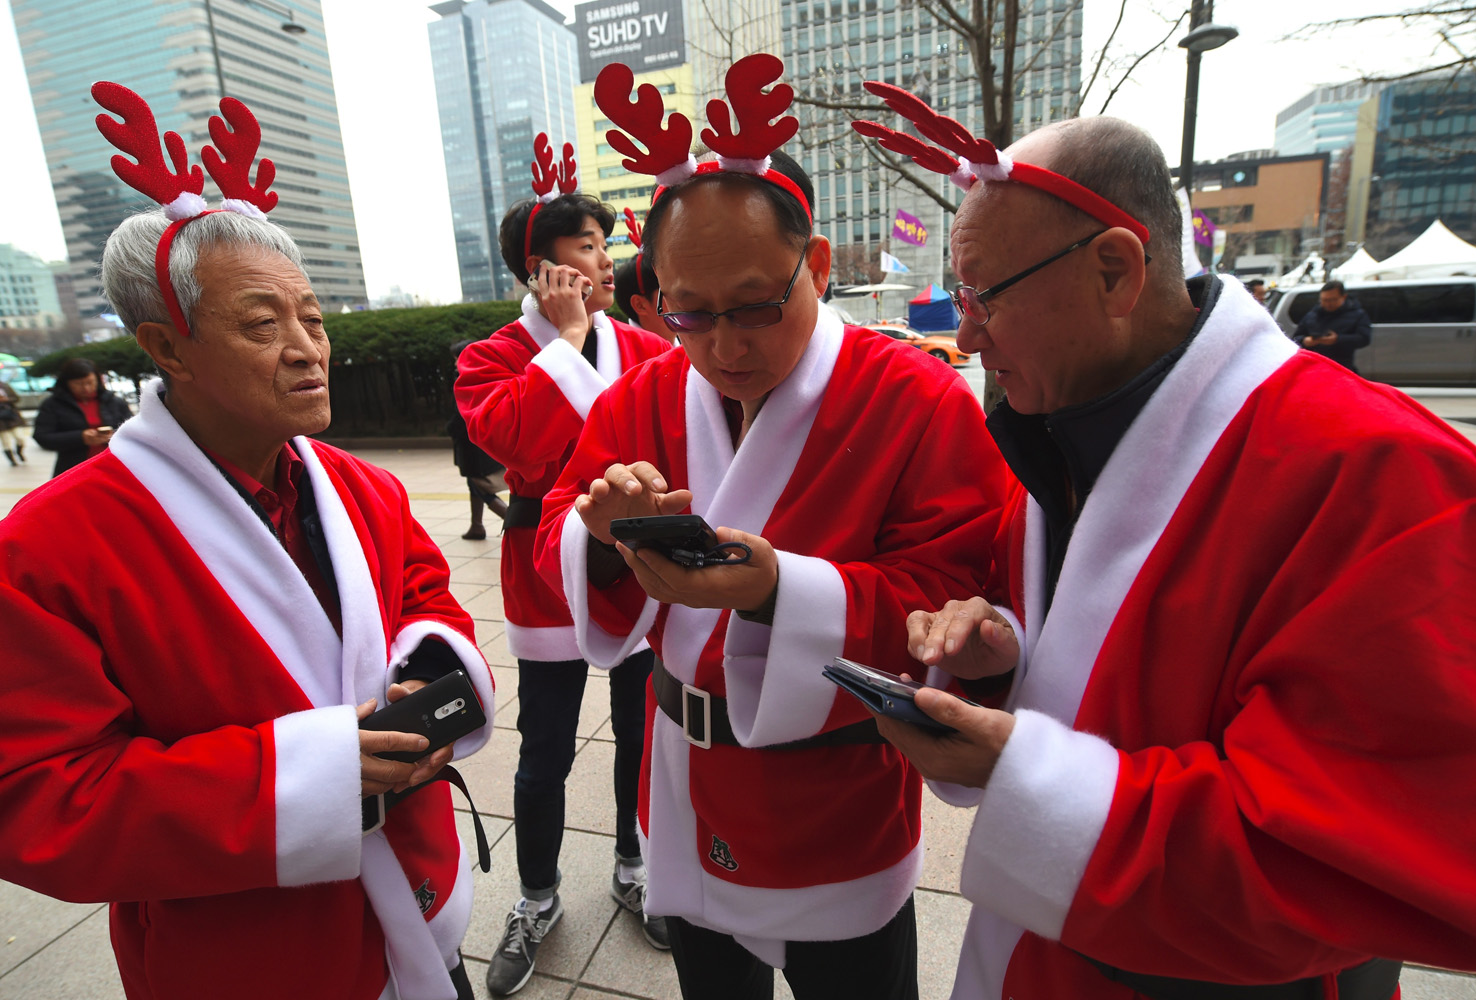 South Korean volunteers in Santa Claus outfits use their smartphones before heading out to distribute Christmas gifts at homes for prematurely born babies in Seoul on December 8, 2016. The volunteers will visit some 40 homes raising prematurely born babies in Seoul and the surrounding Gyeonggi Province. / AFP PHOTO / JUNG Yeon-Je